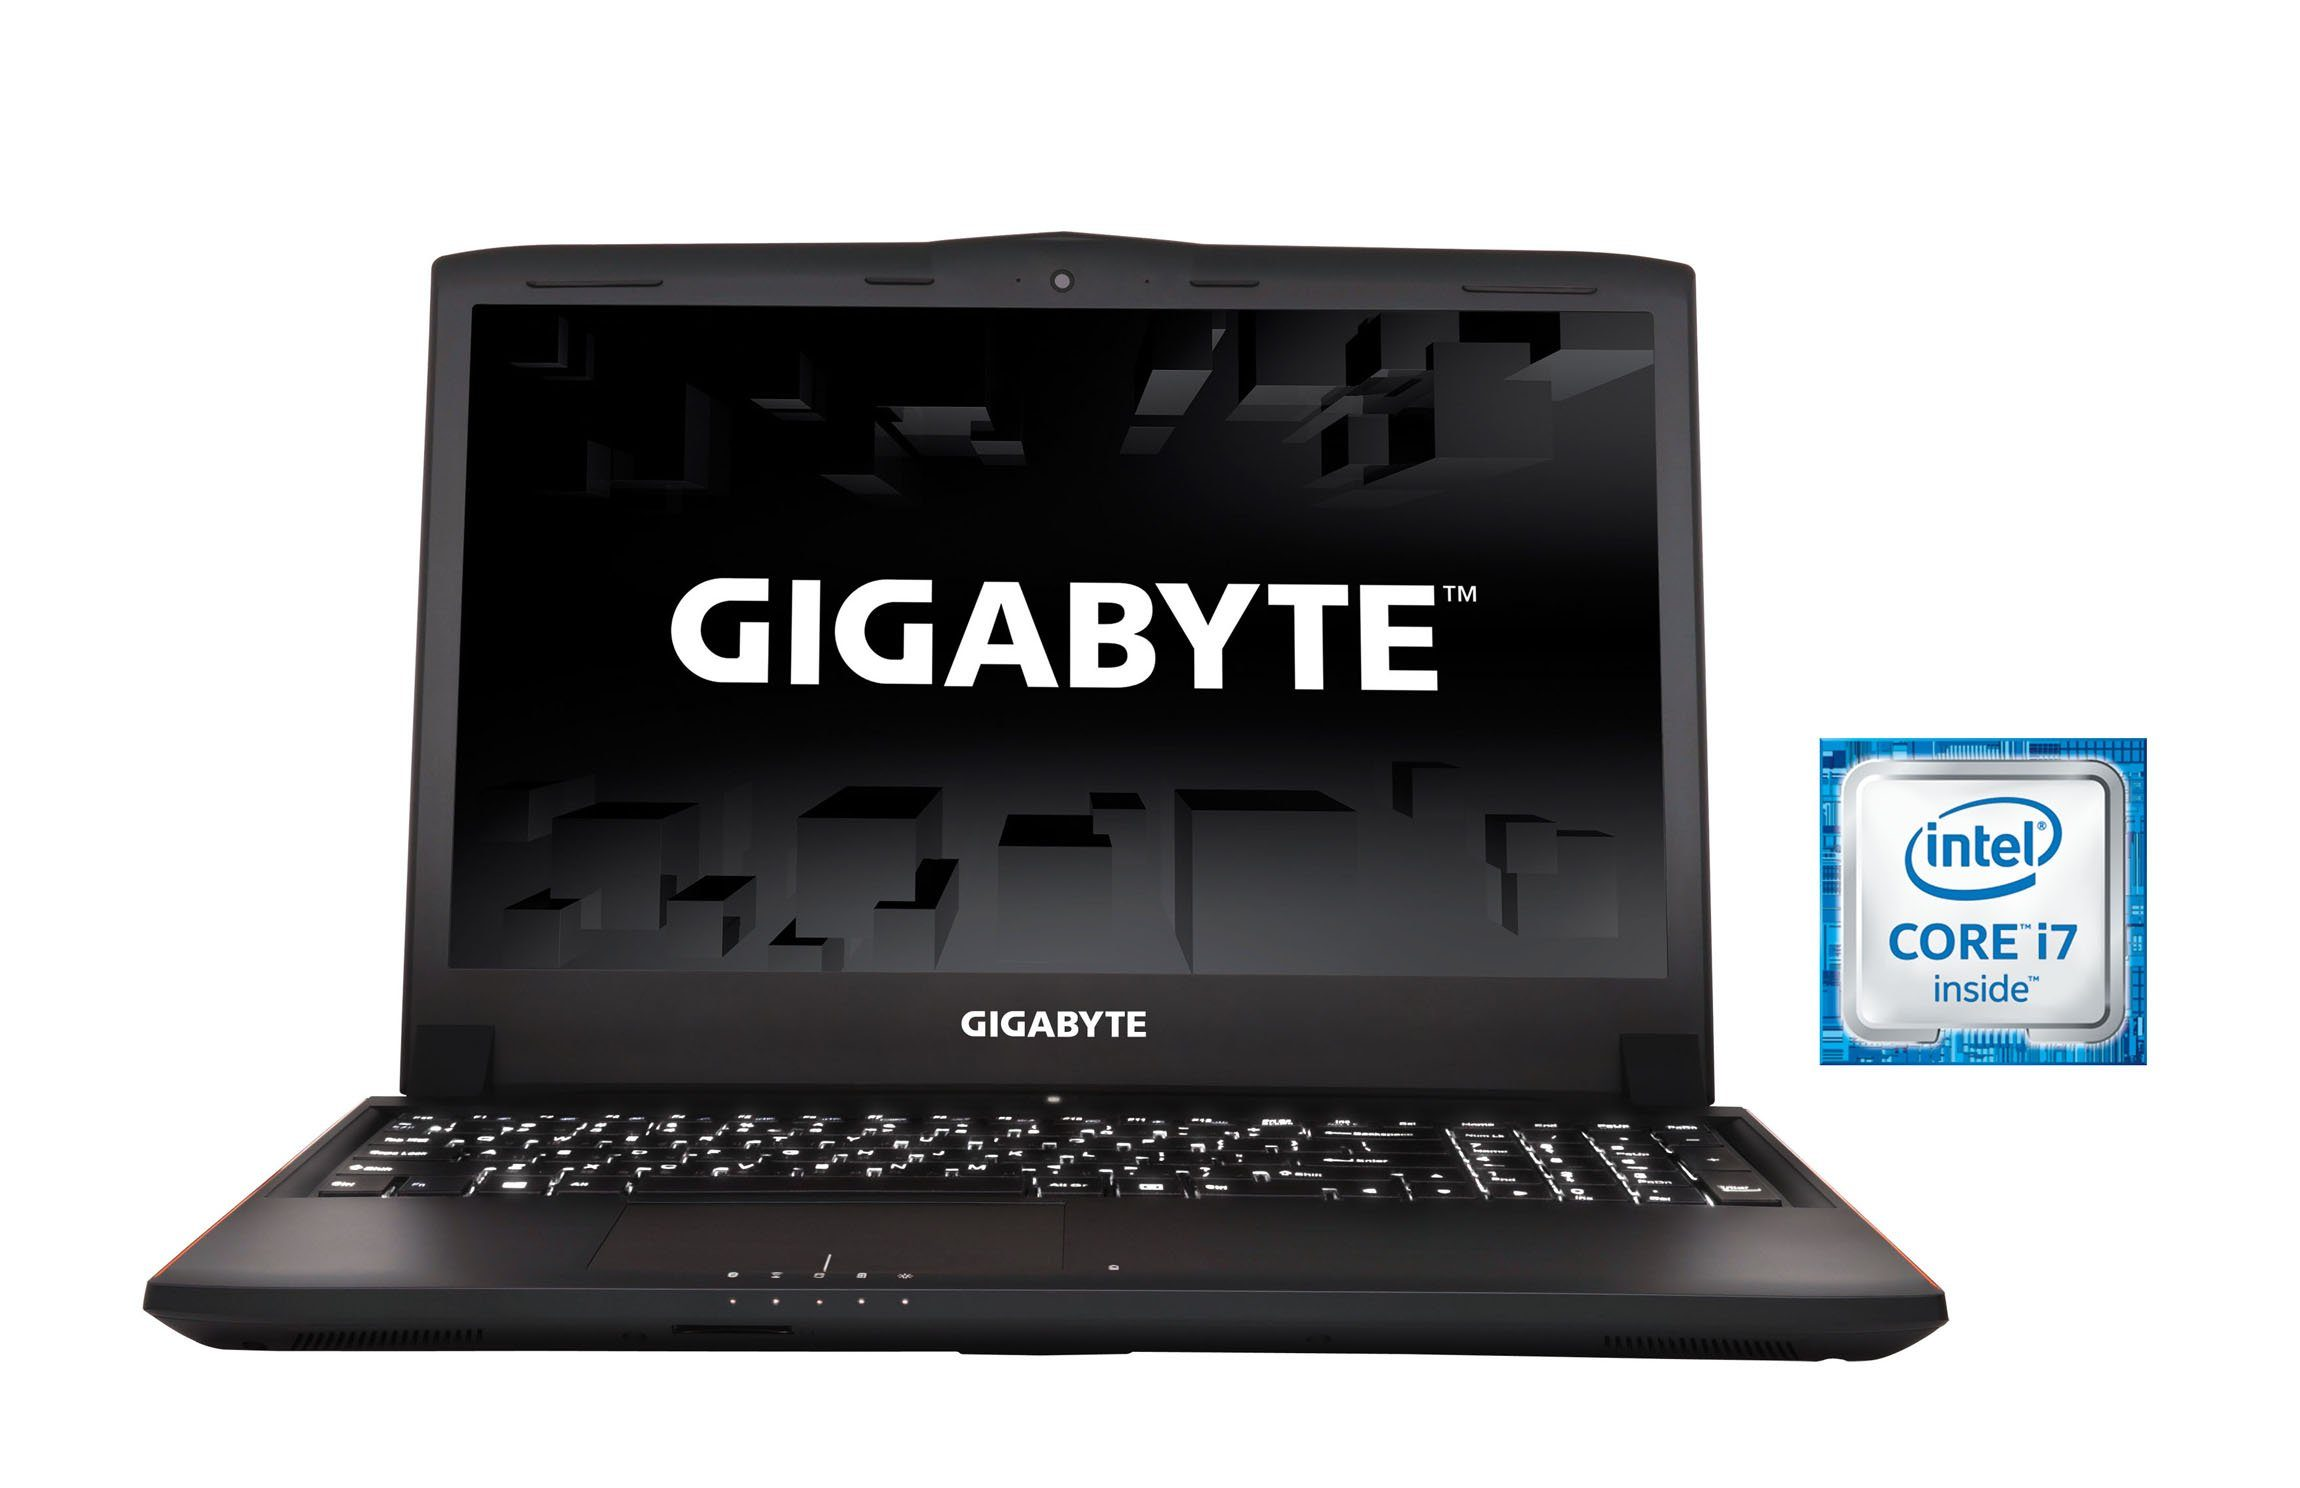 "GIGABYTE 15,6"", Intel® i7-6700HQ, 8GB, SSD + HDD, GeForce® GTX 970M »P55Wv5-CF4DE«"